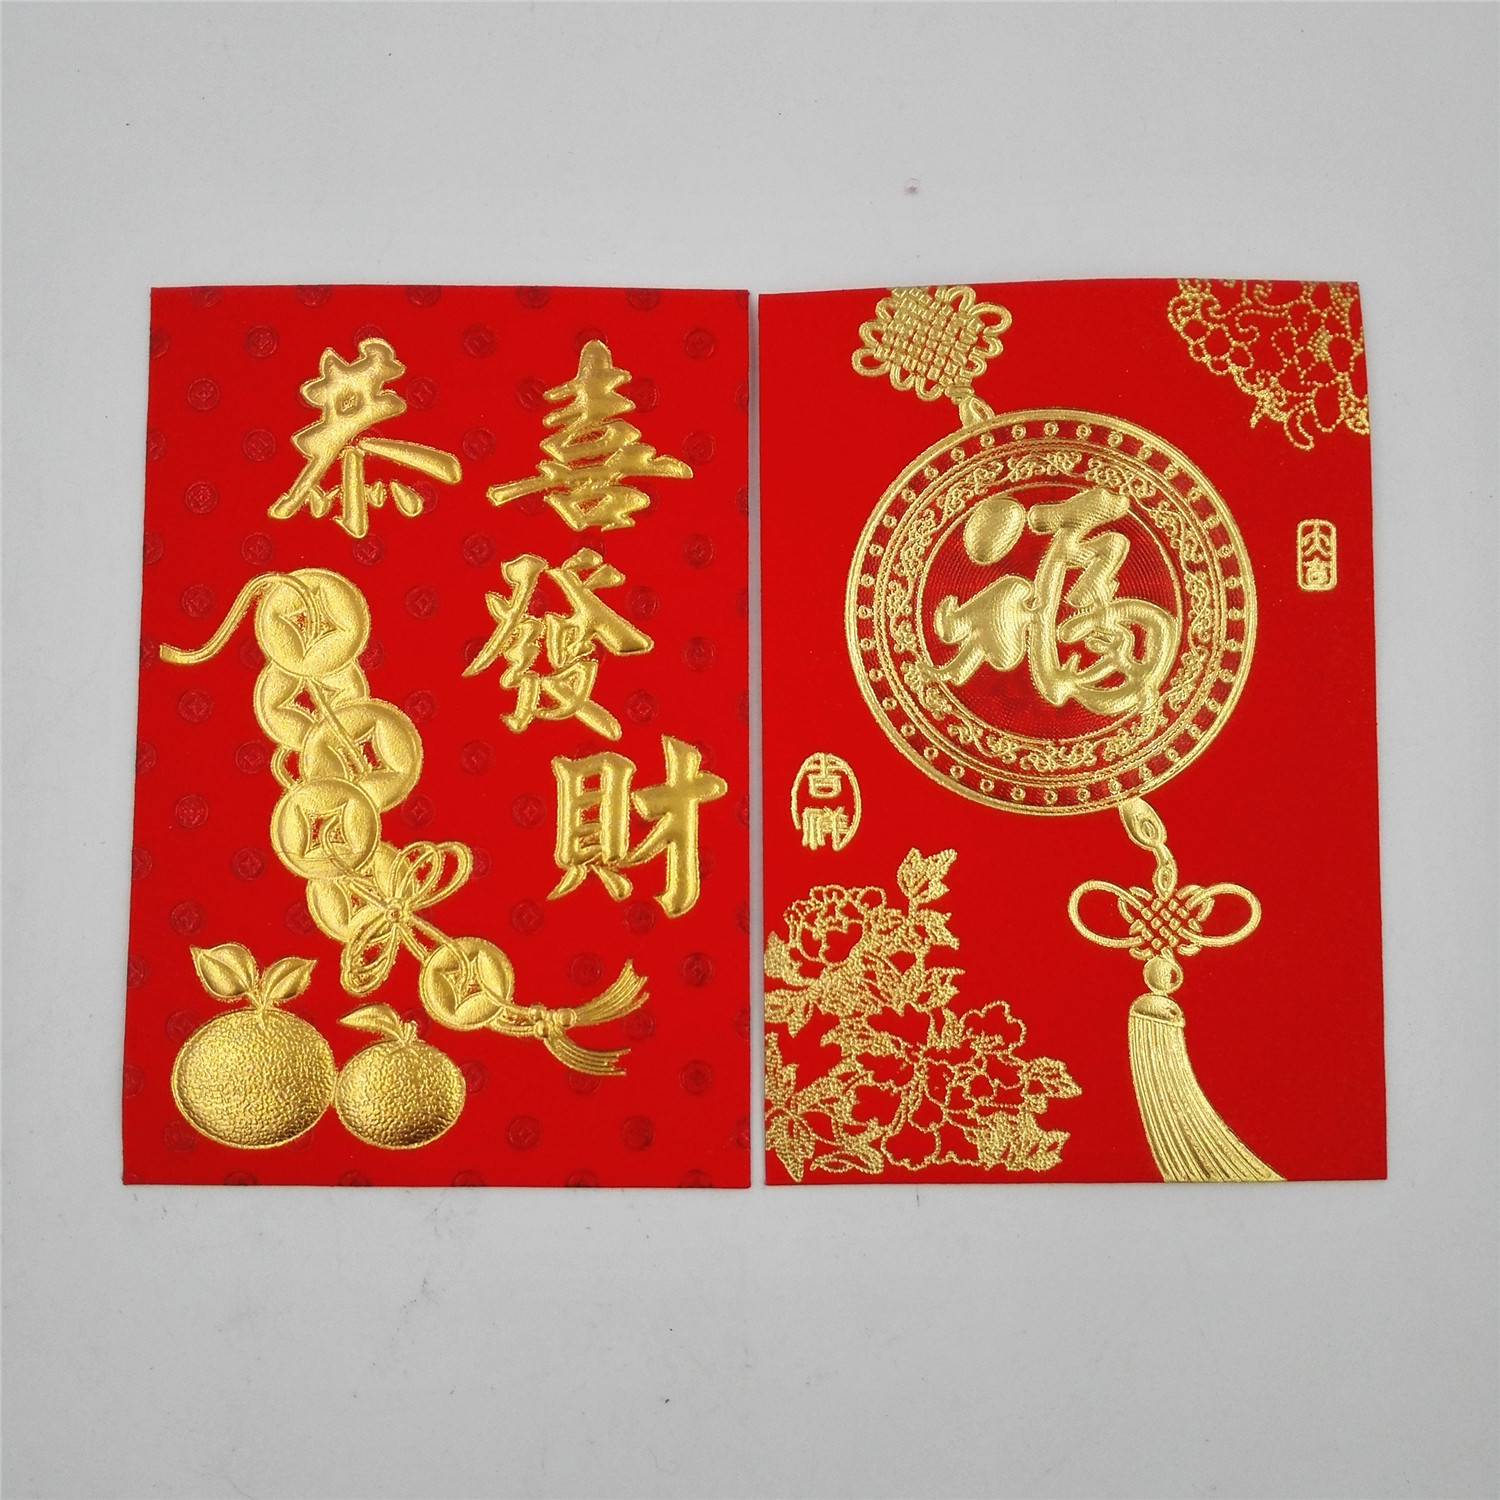 50 red packet red envelope chinese new year lucky money hongbao 9766mm - Red Envelopes Chinese New Year